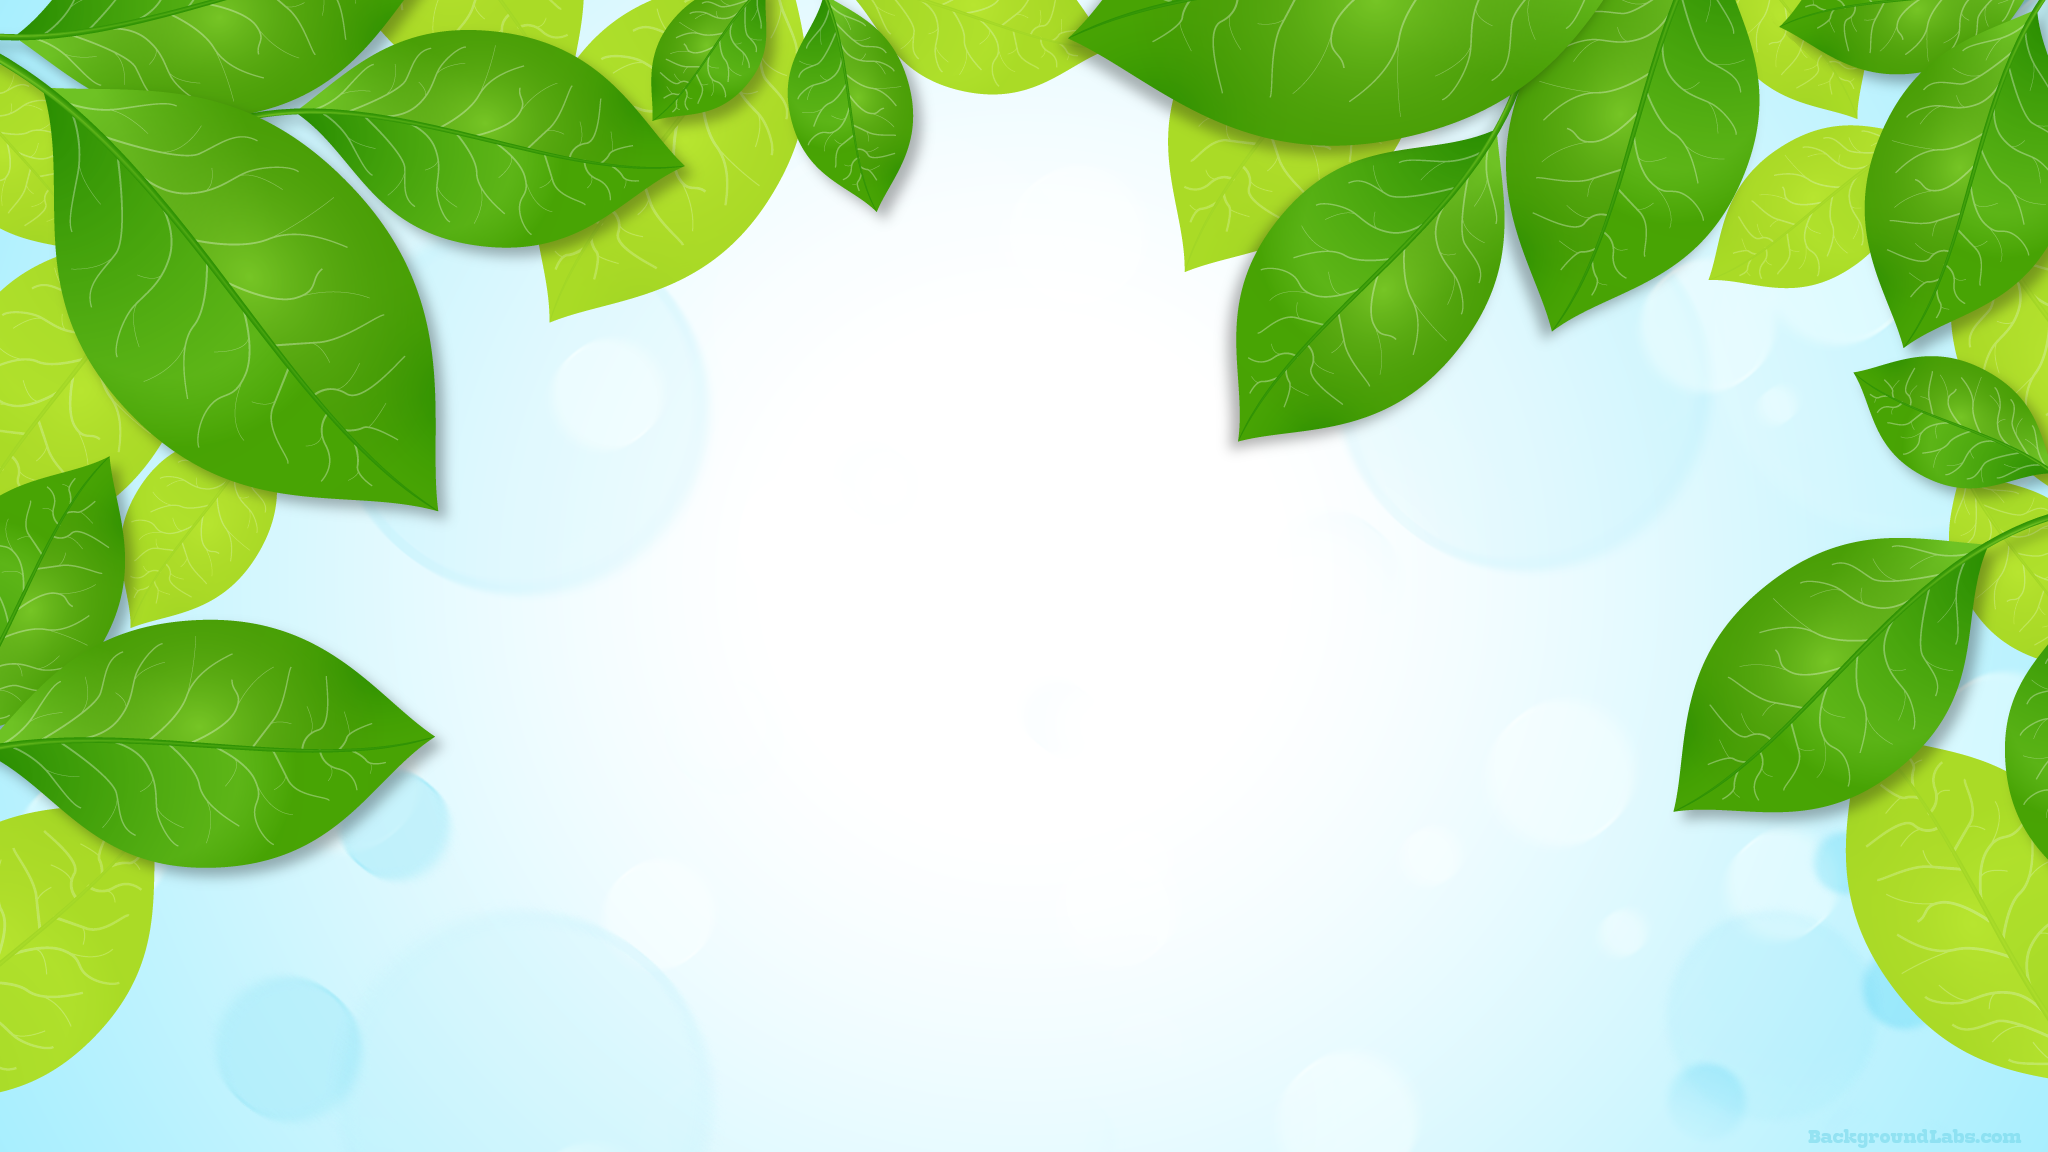 green leaves frame background background labs frame vector cdr frame vector ai